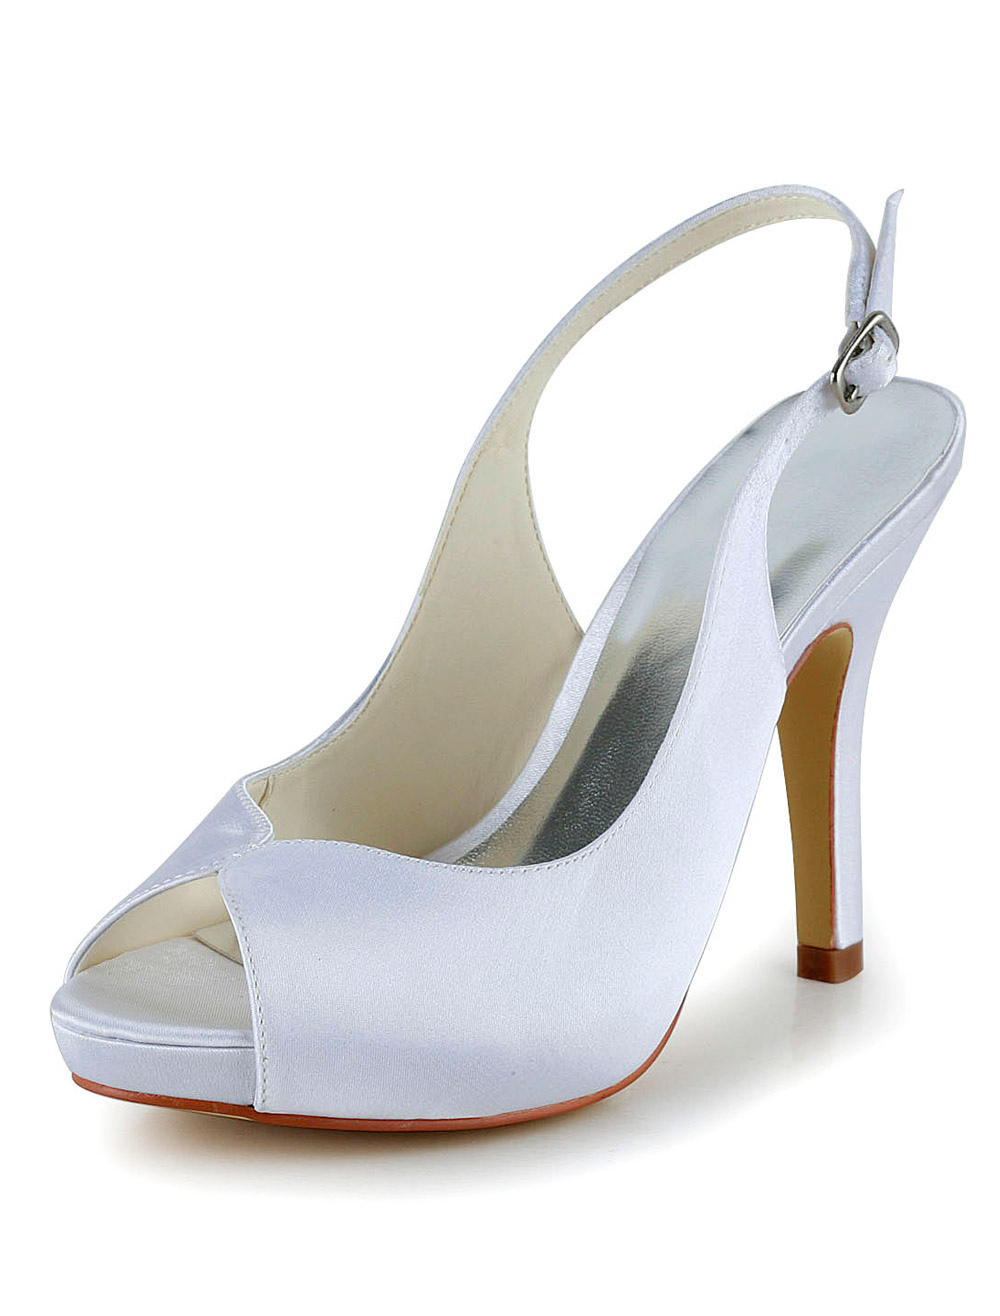 White Silk And Satin Peep Toe Pumps For Bride